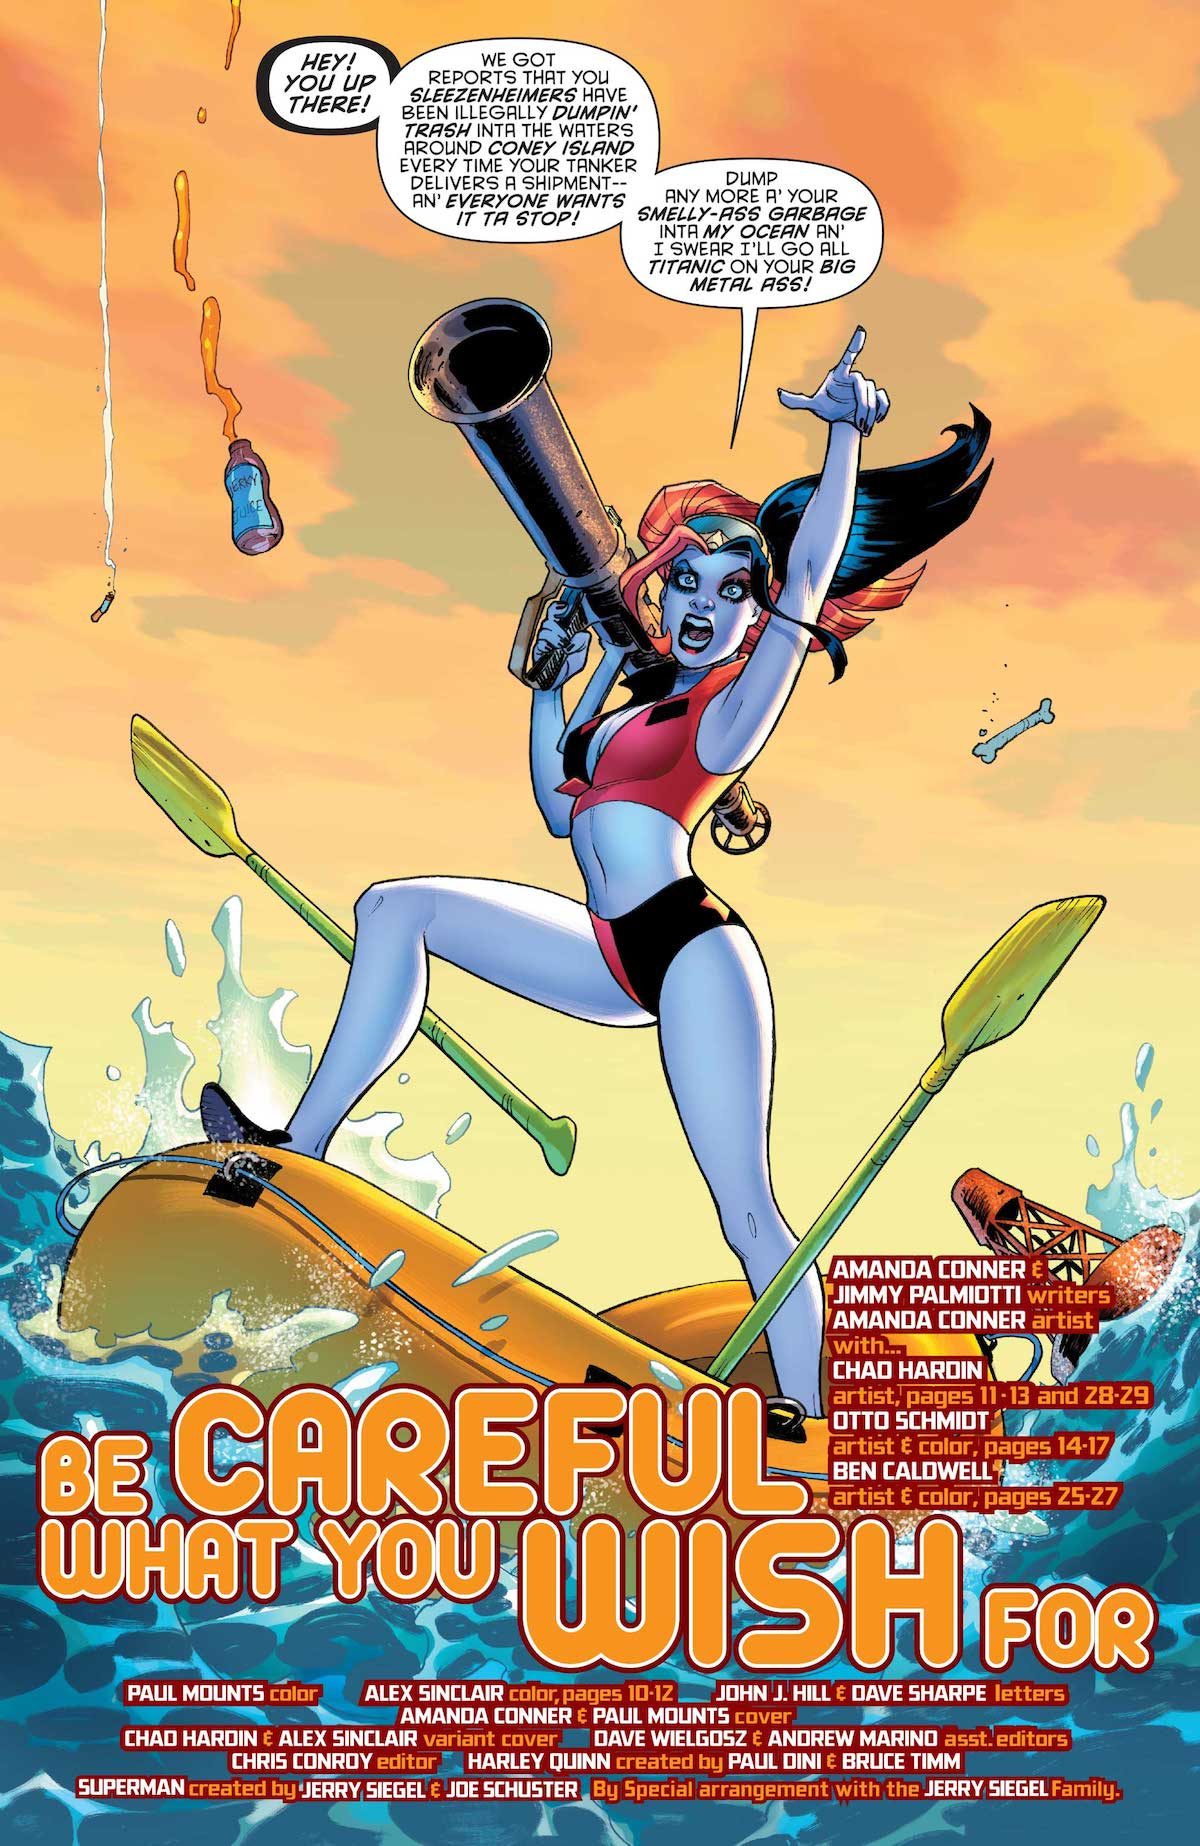 Harley Quinn: Be Careful What You Wish For #1 interior art